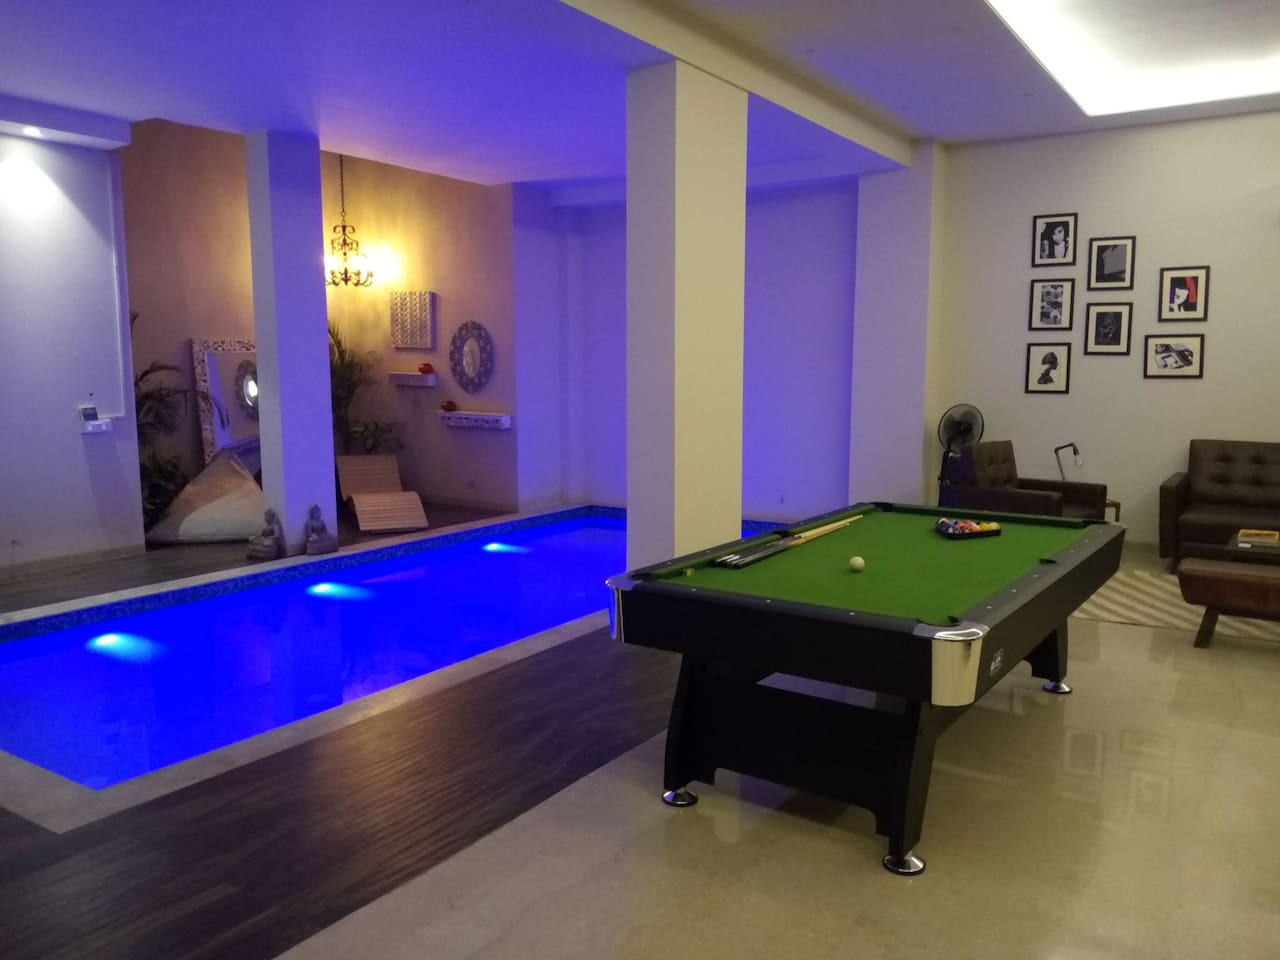 Swimming pool and recreational area only for the listing residents